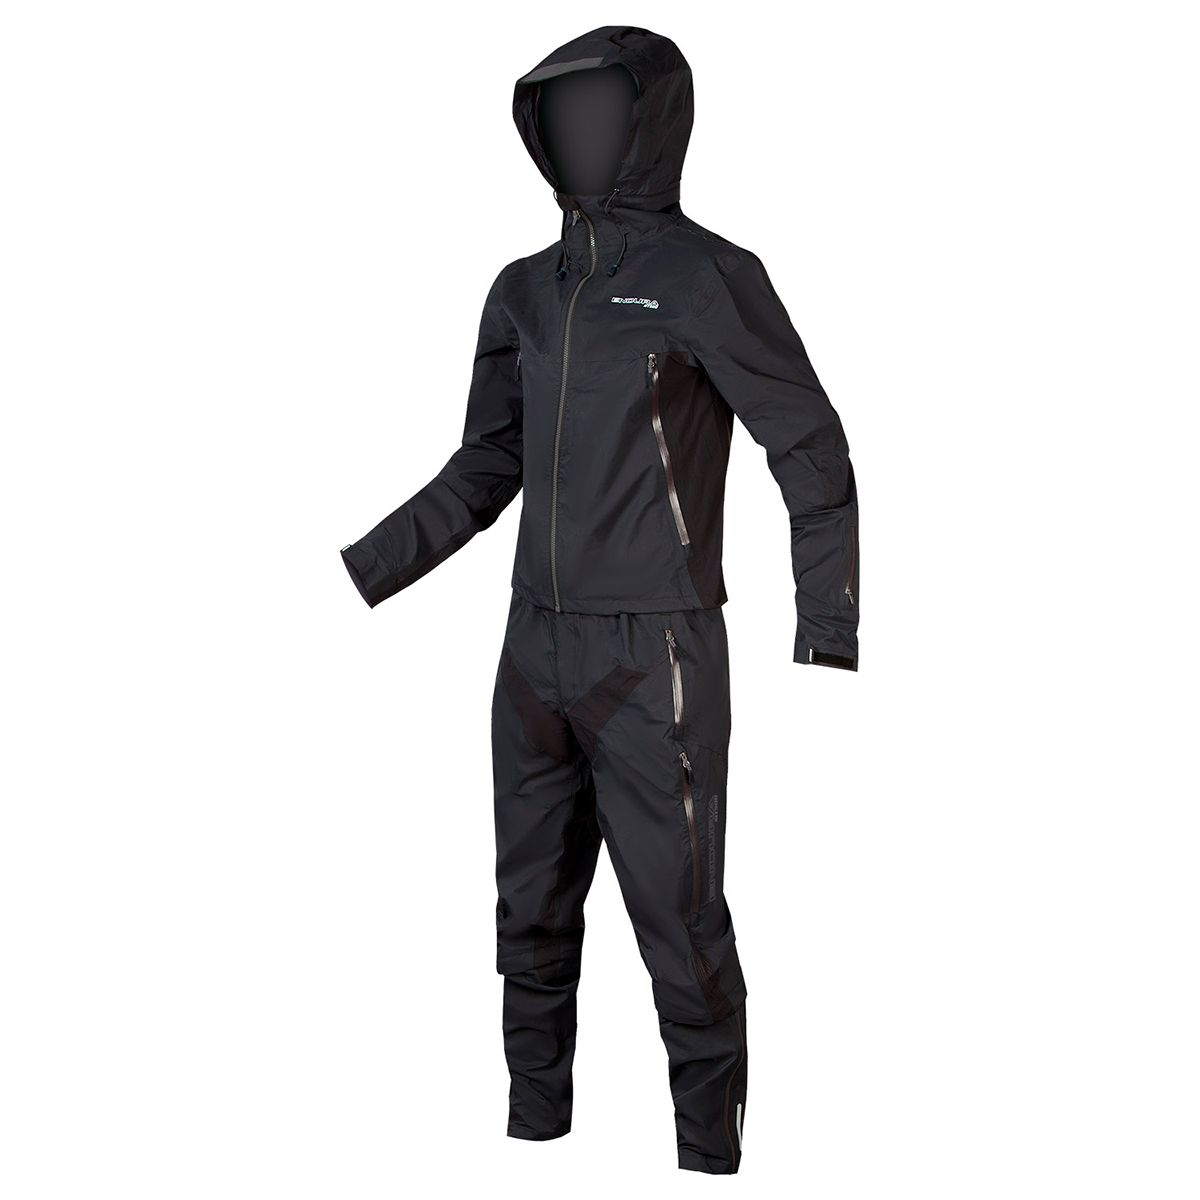 MT500 waterproof one-piece suit for men